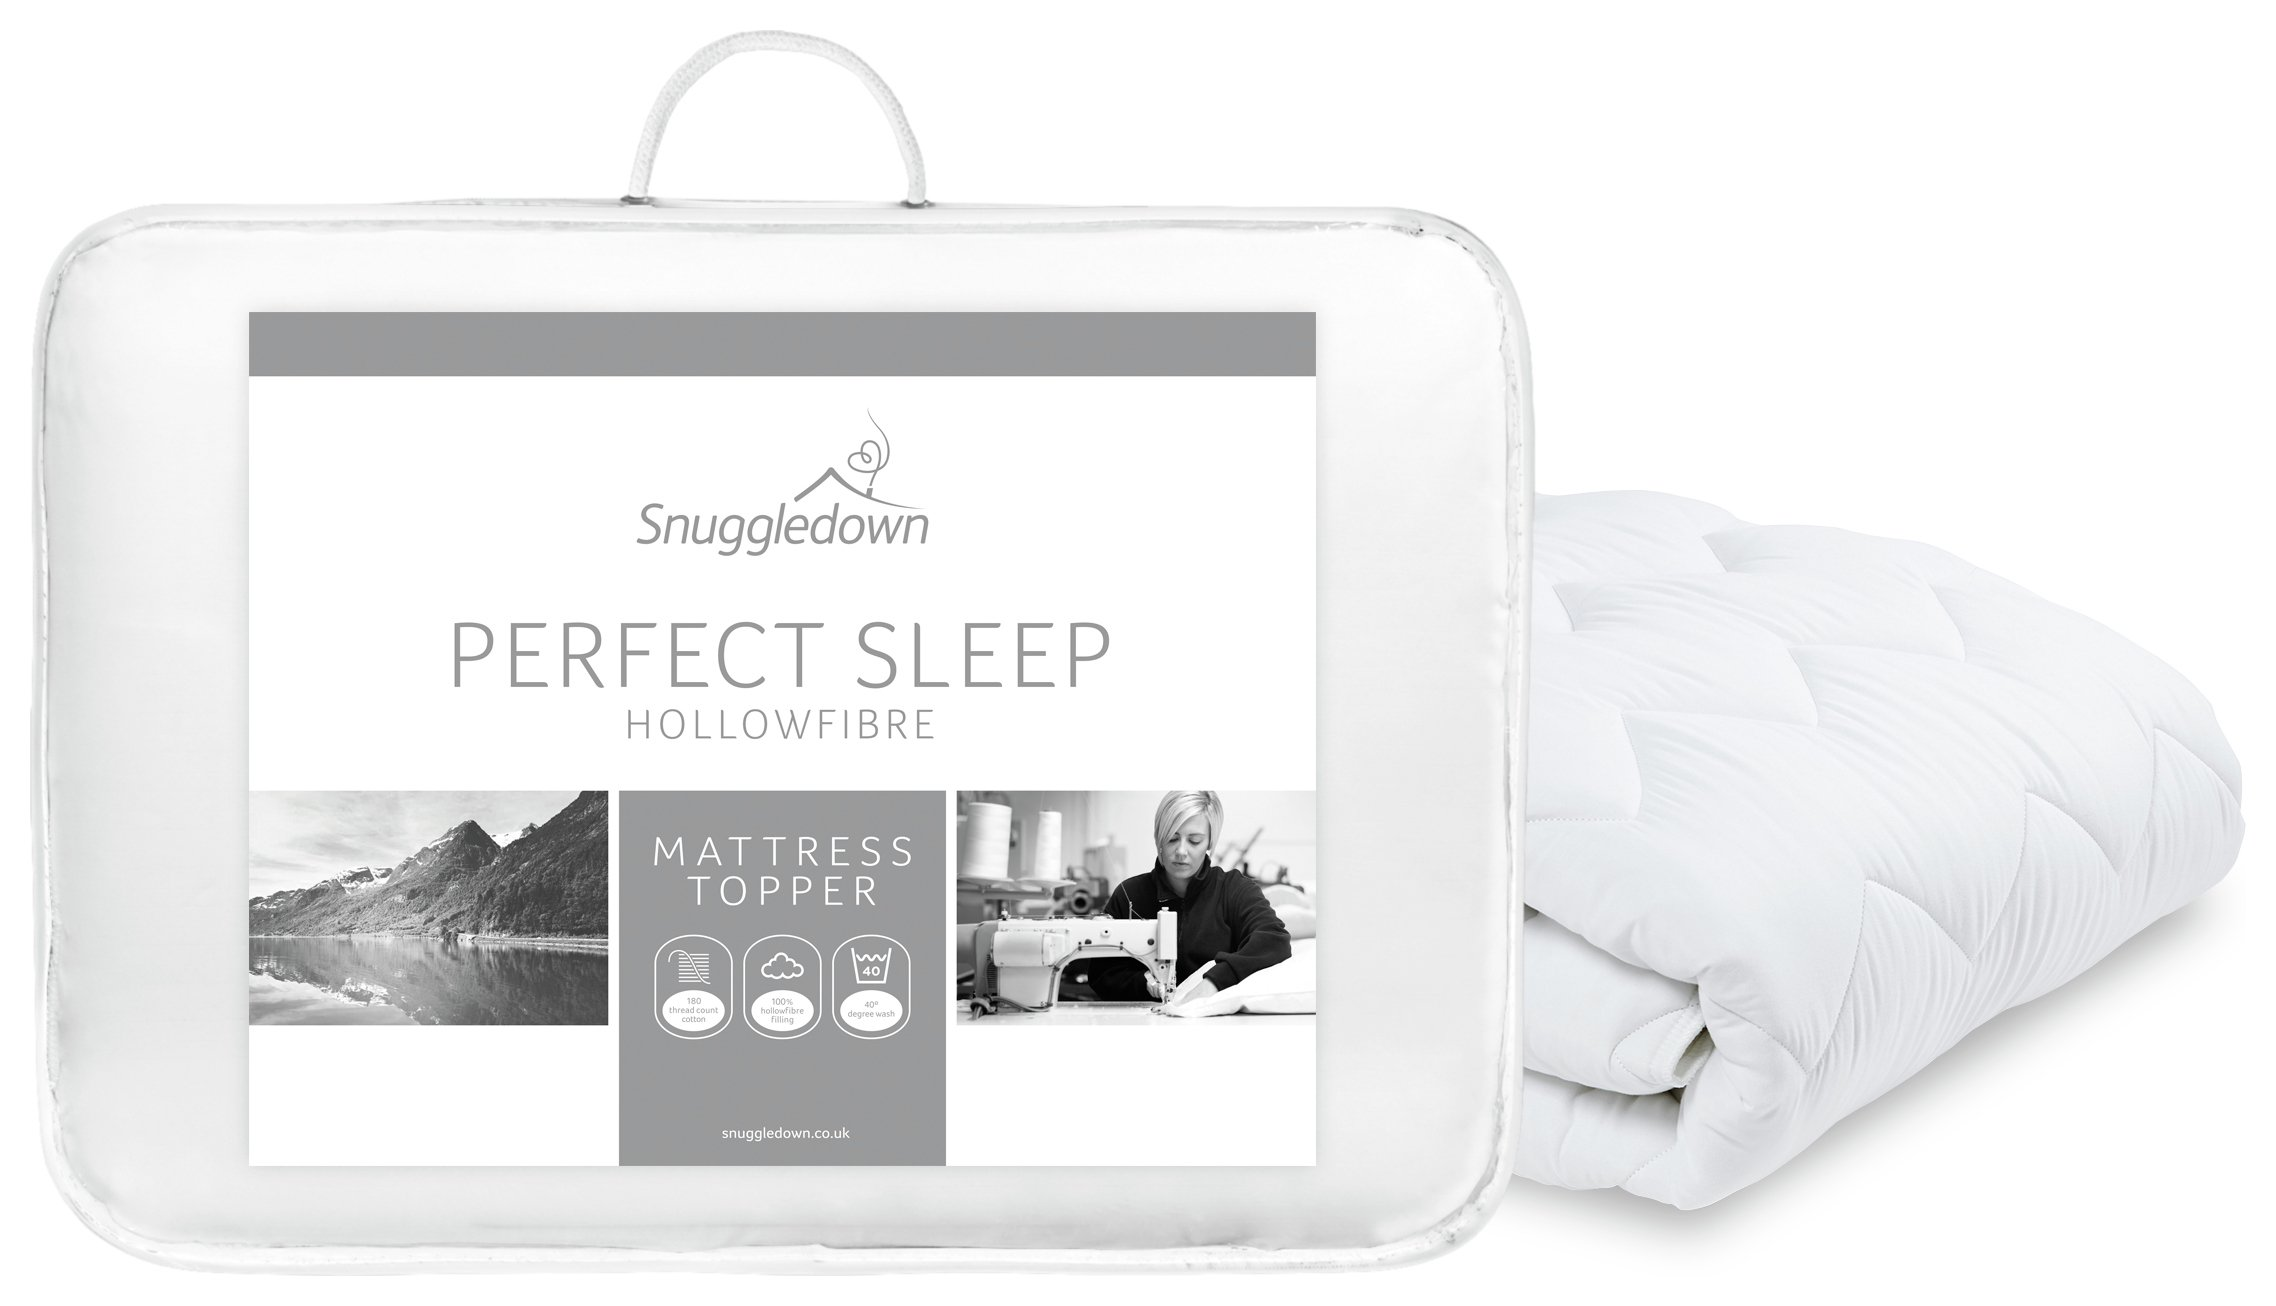 snuggledown perfect sleep mattress topper double review. Black Bedroom Furniture Sets. Home Design Ideas